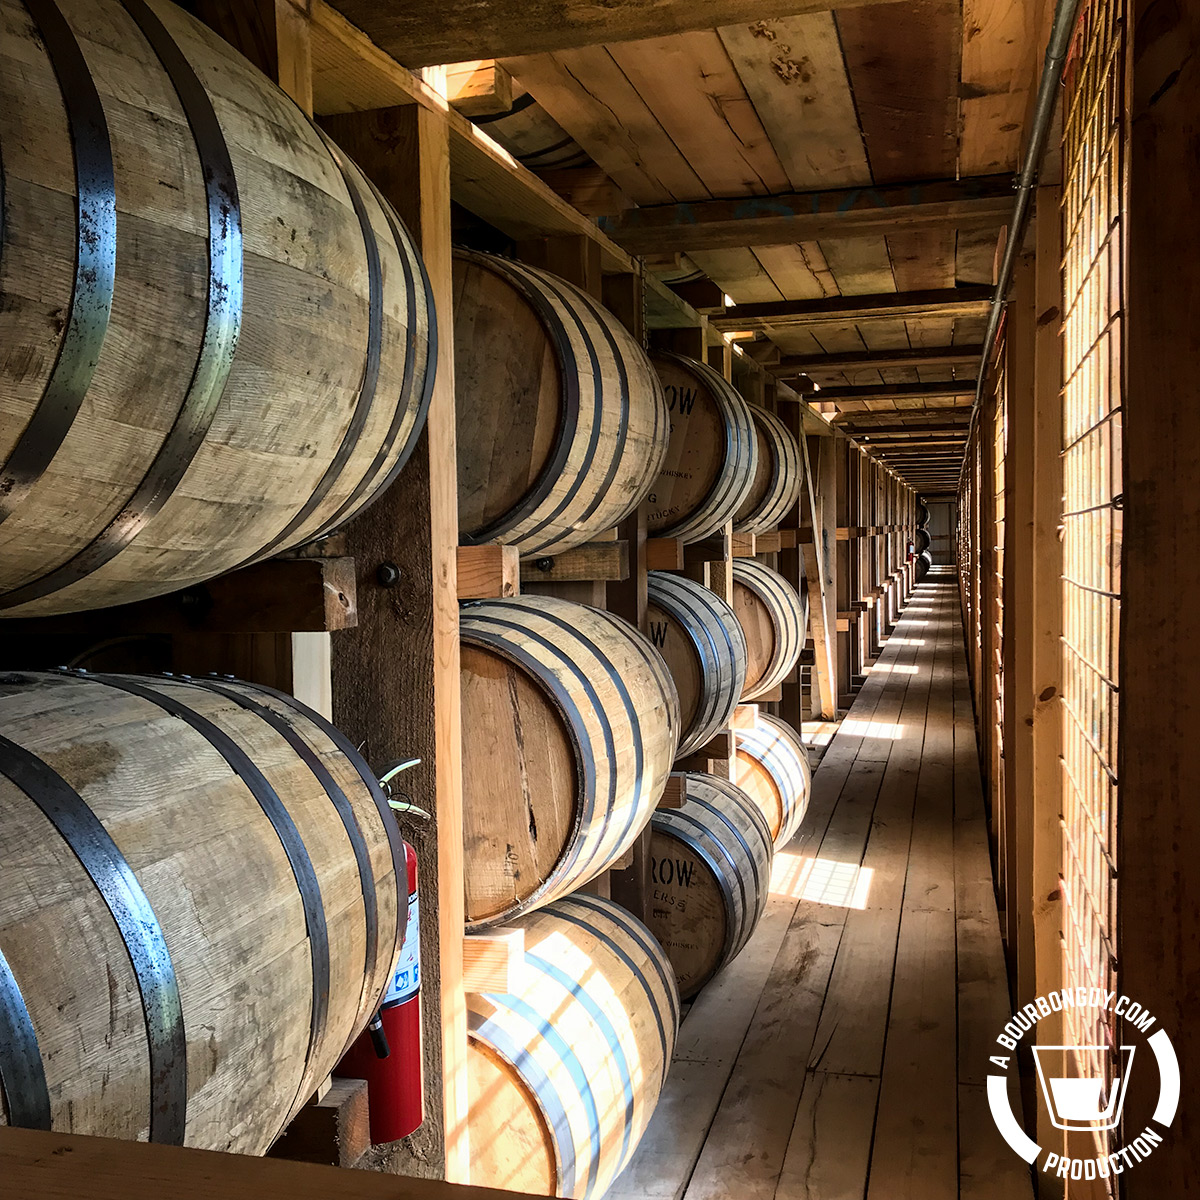 IMAGE: A view down the side hall of the Lux Row aging warehouse. Barrels in the foreground.